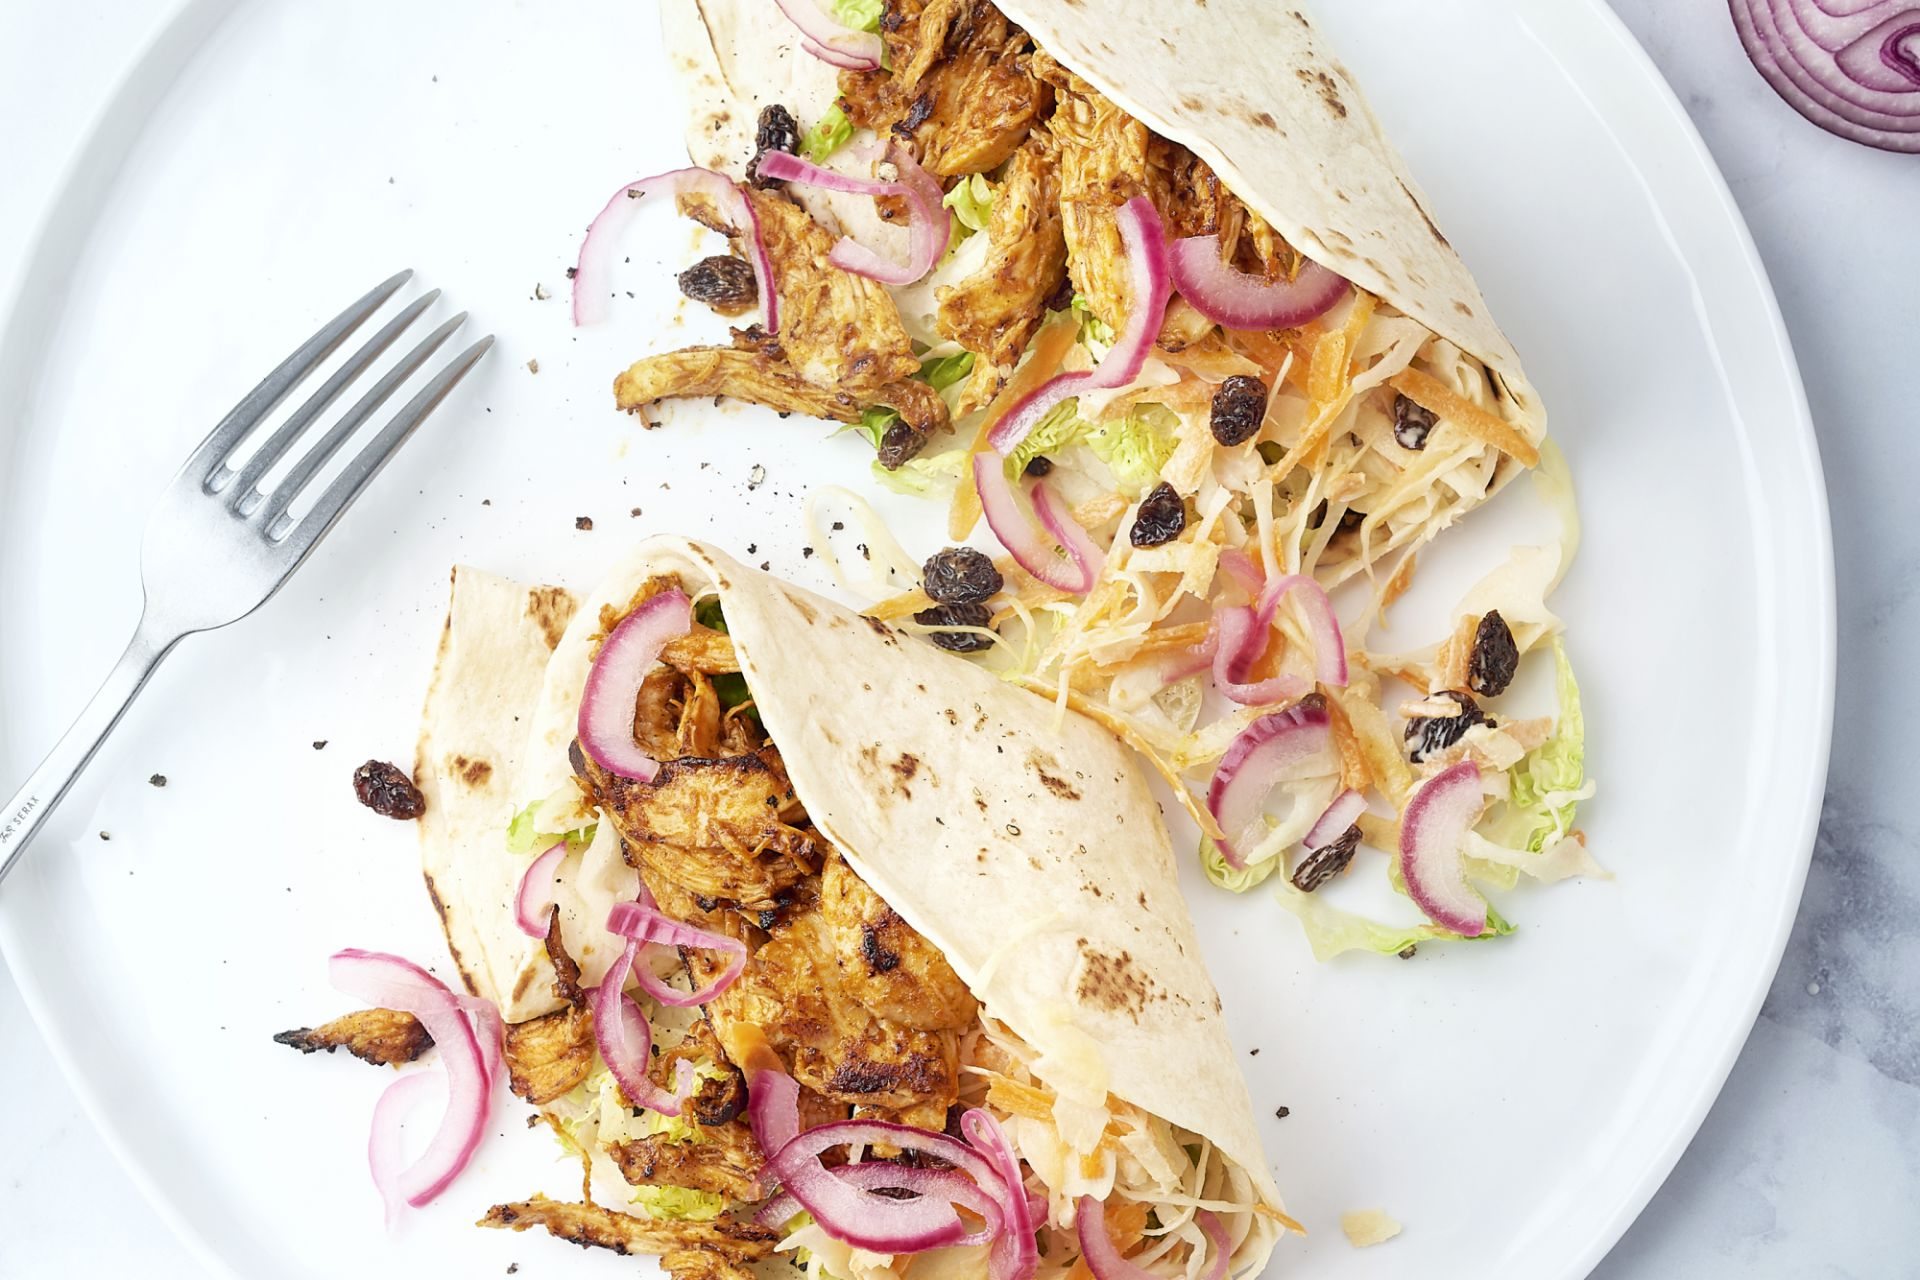 Pulled chicken wraps met coleslaw